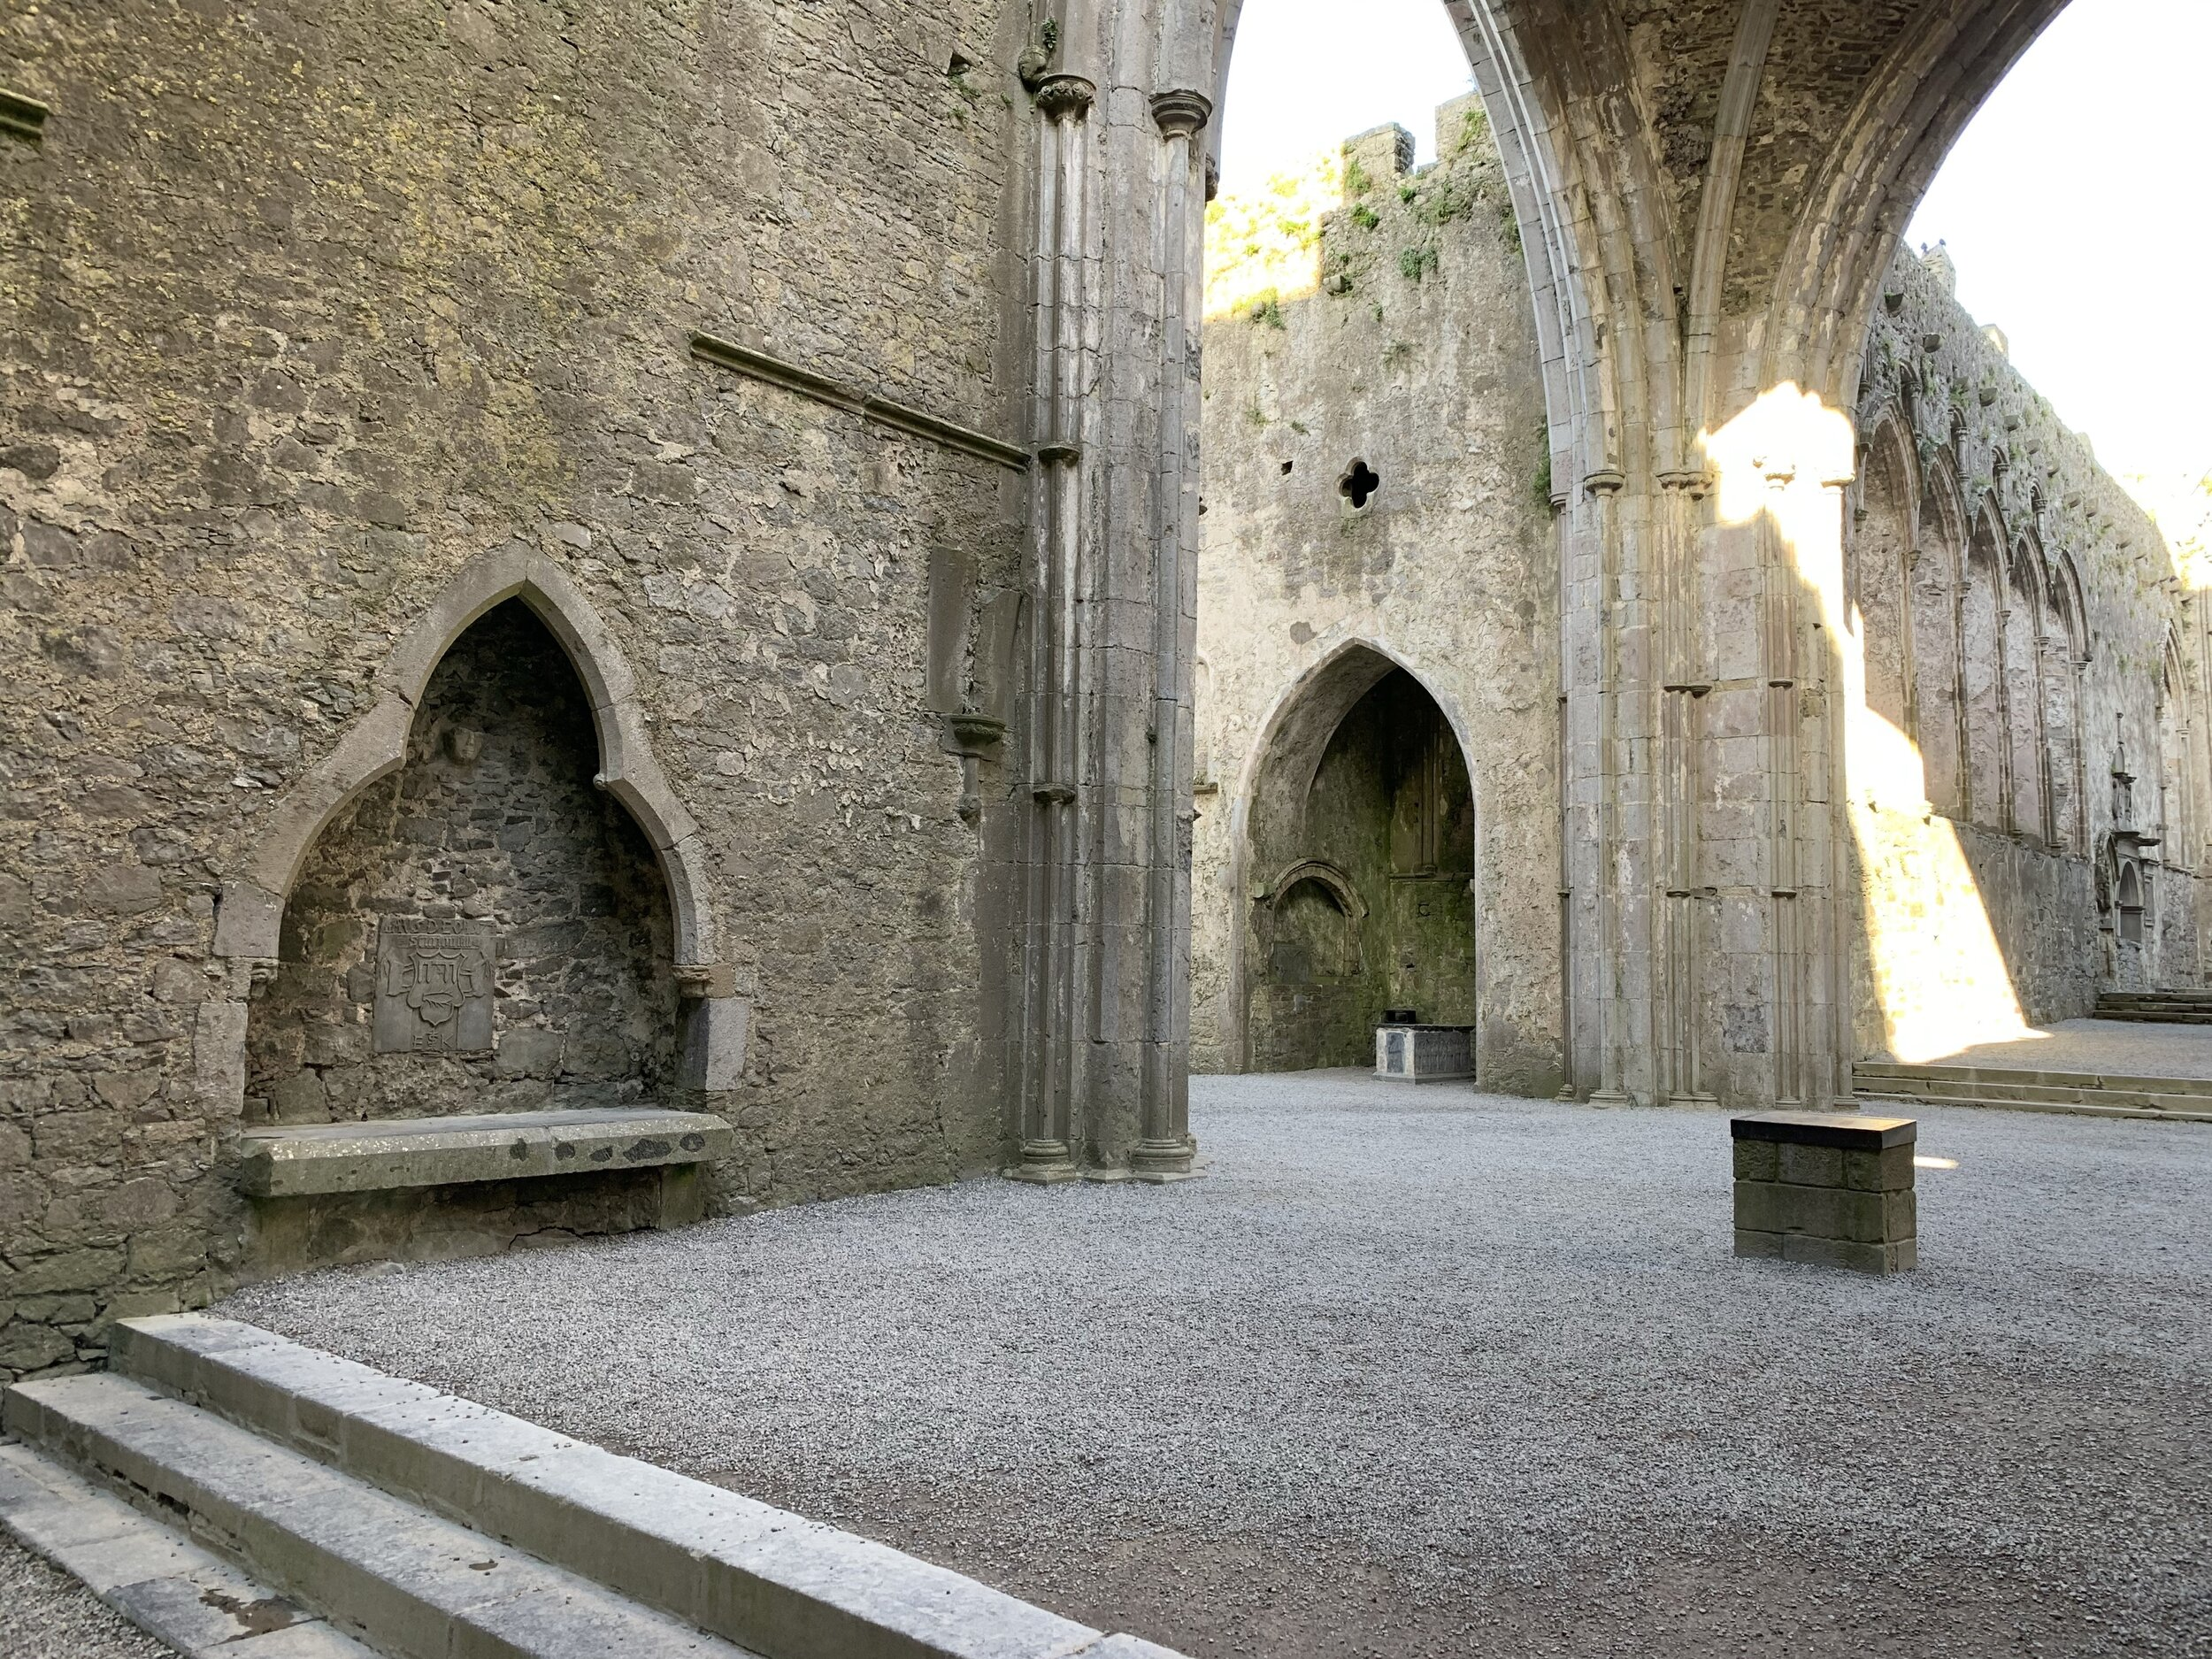 The Rock of Cashel